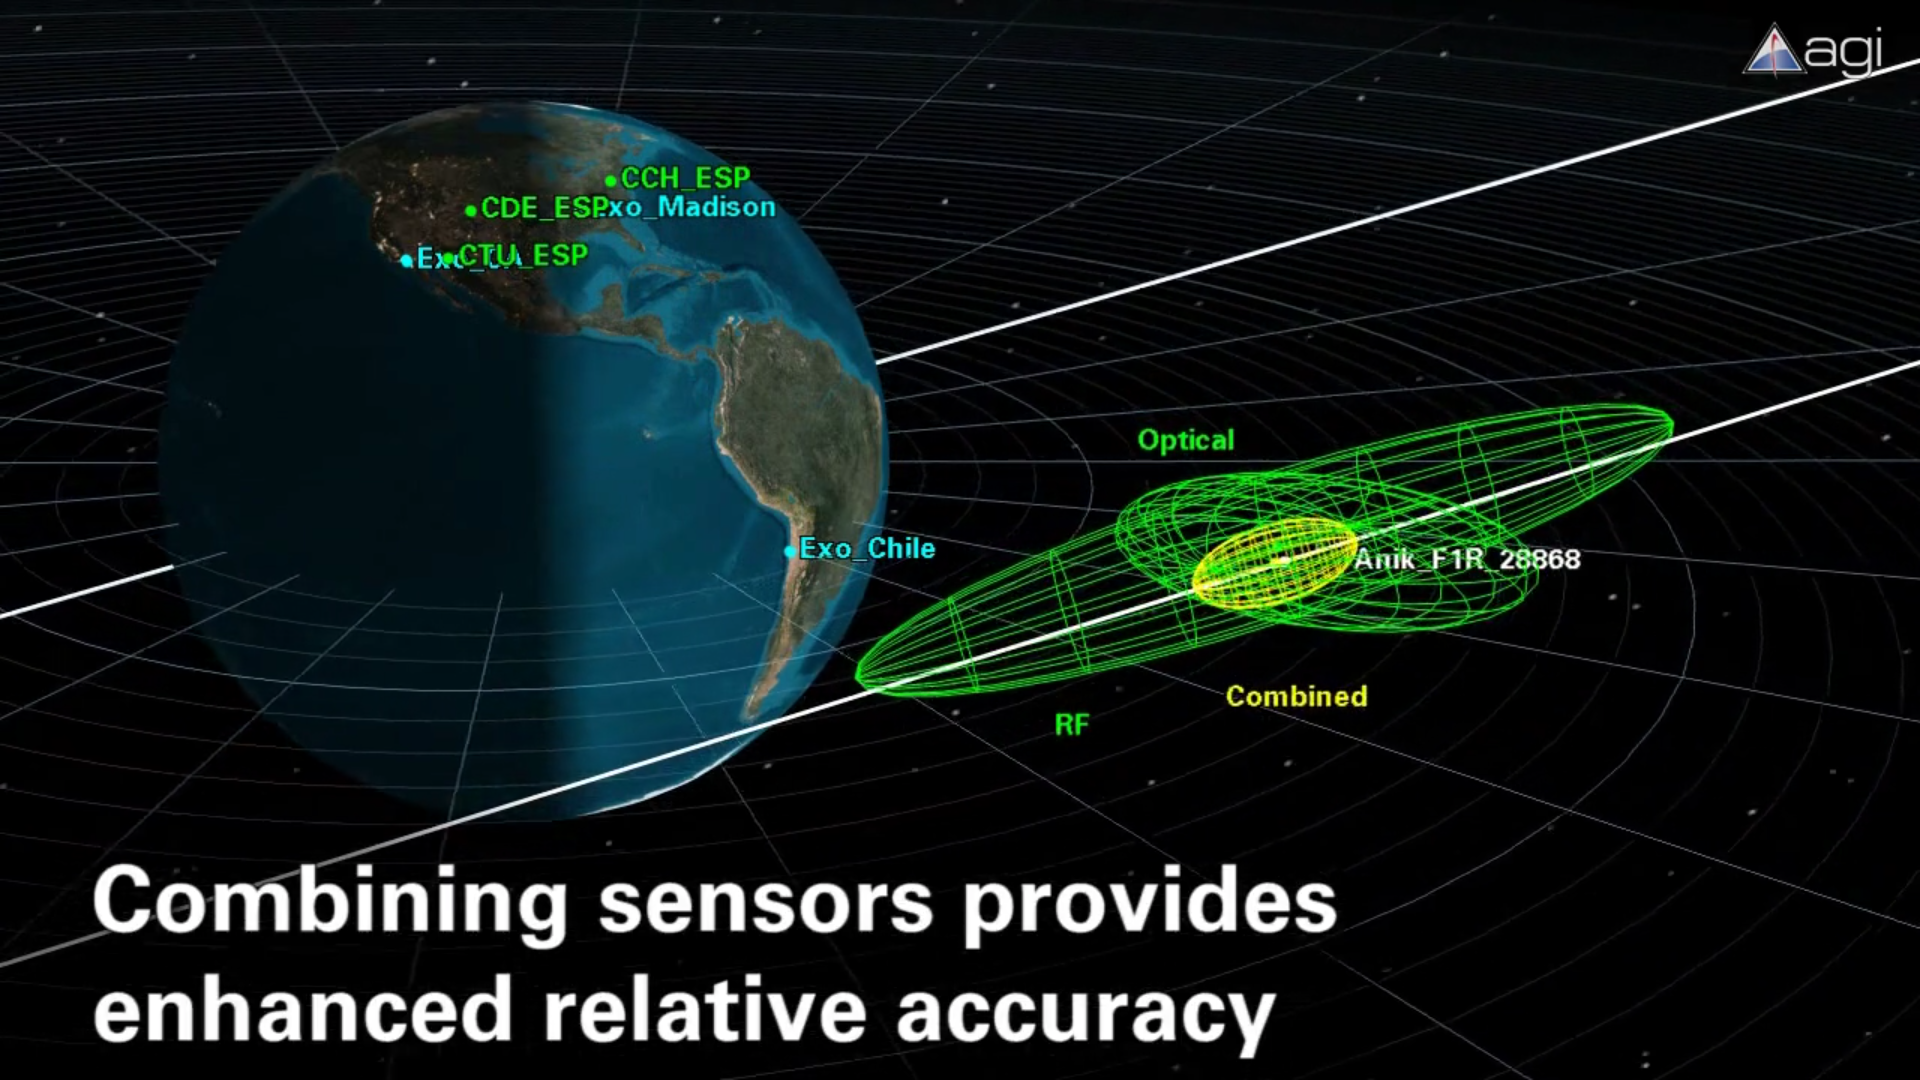 Combining Sensors for Greater Positioning Accuracy